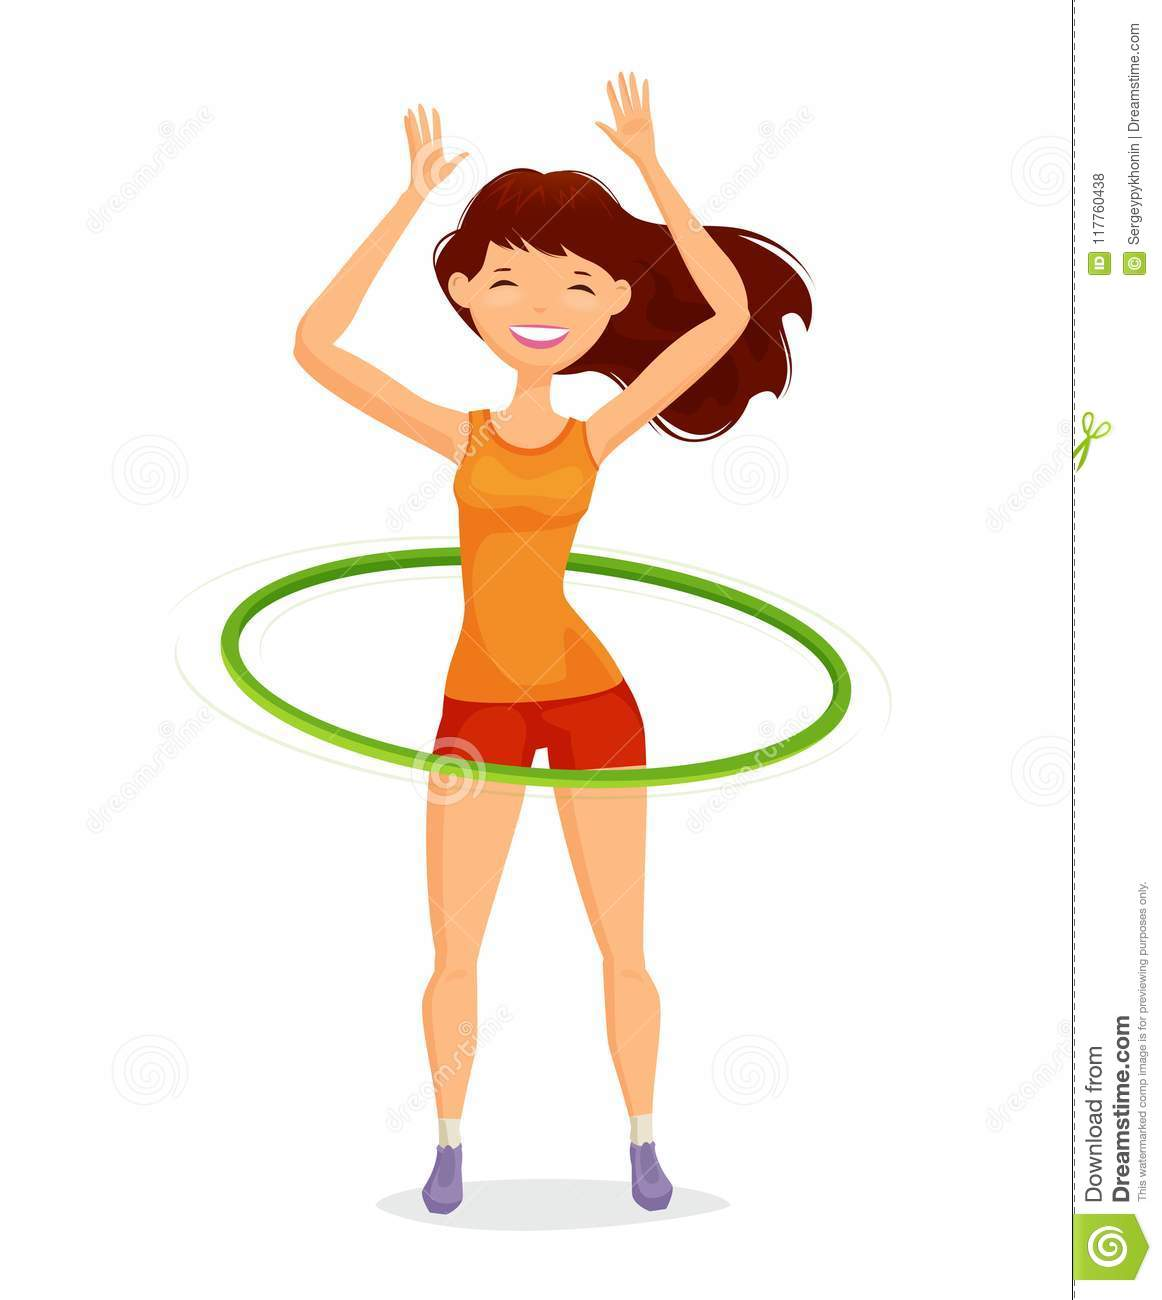 Sport girl turns the hula hoop. Fitness, healthy lifestyle concept. Funny cartoon vector illustration